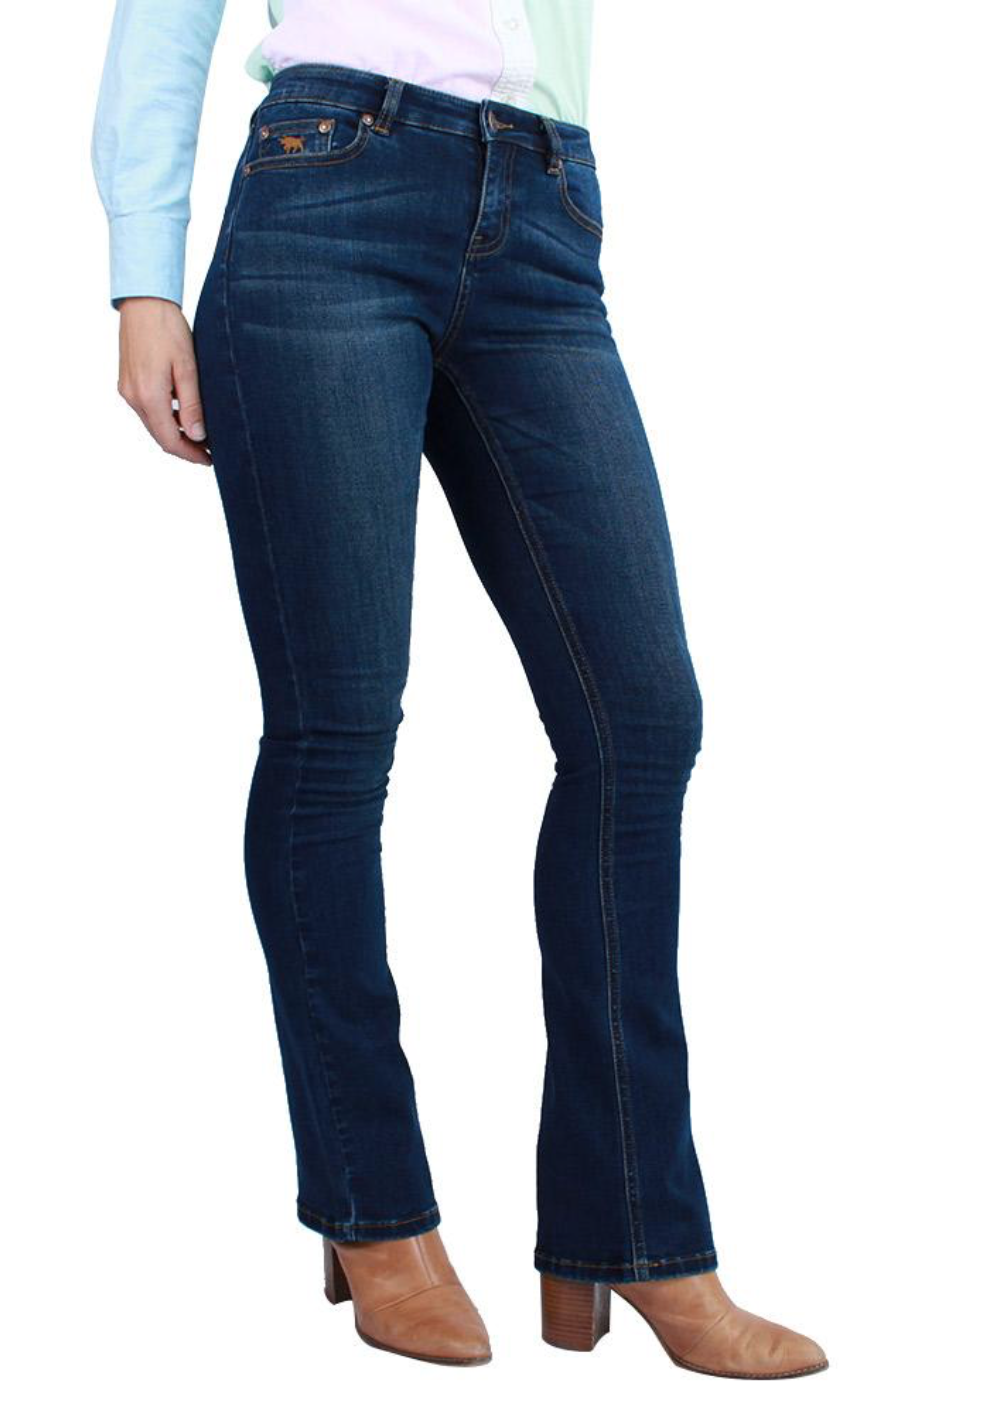 Ringers Western | Womens | Jeans | Waist Mid | Bootcut | 36"